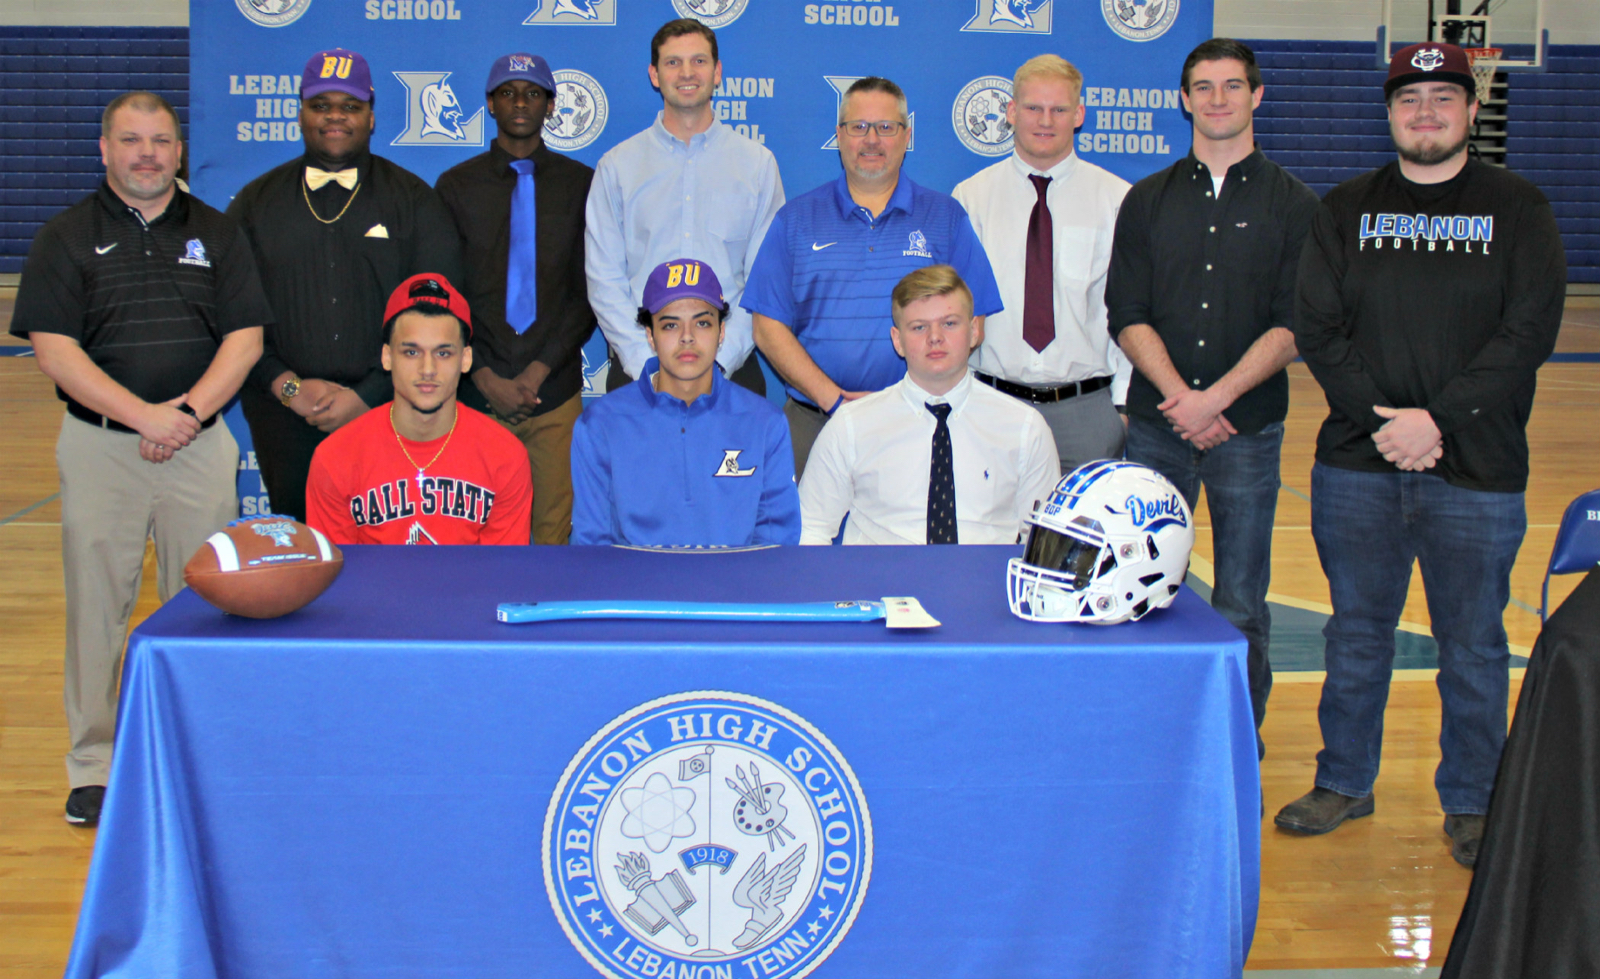 Big Day for LHS Football – National Signing Day, photo by Tommy Bryan, The Wilson Post